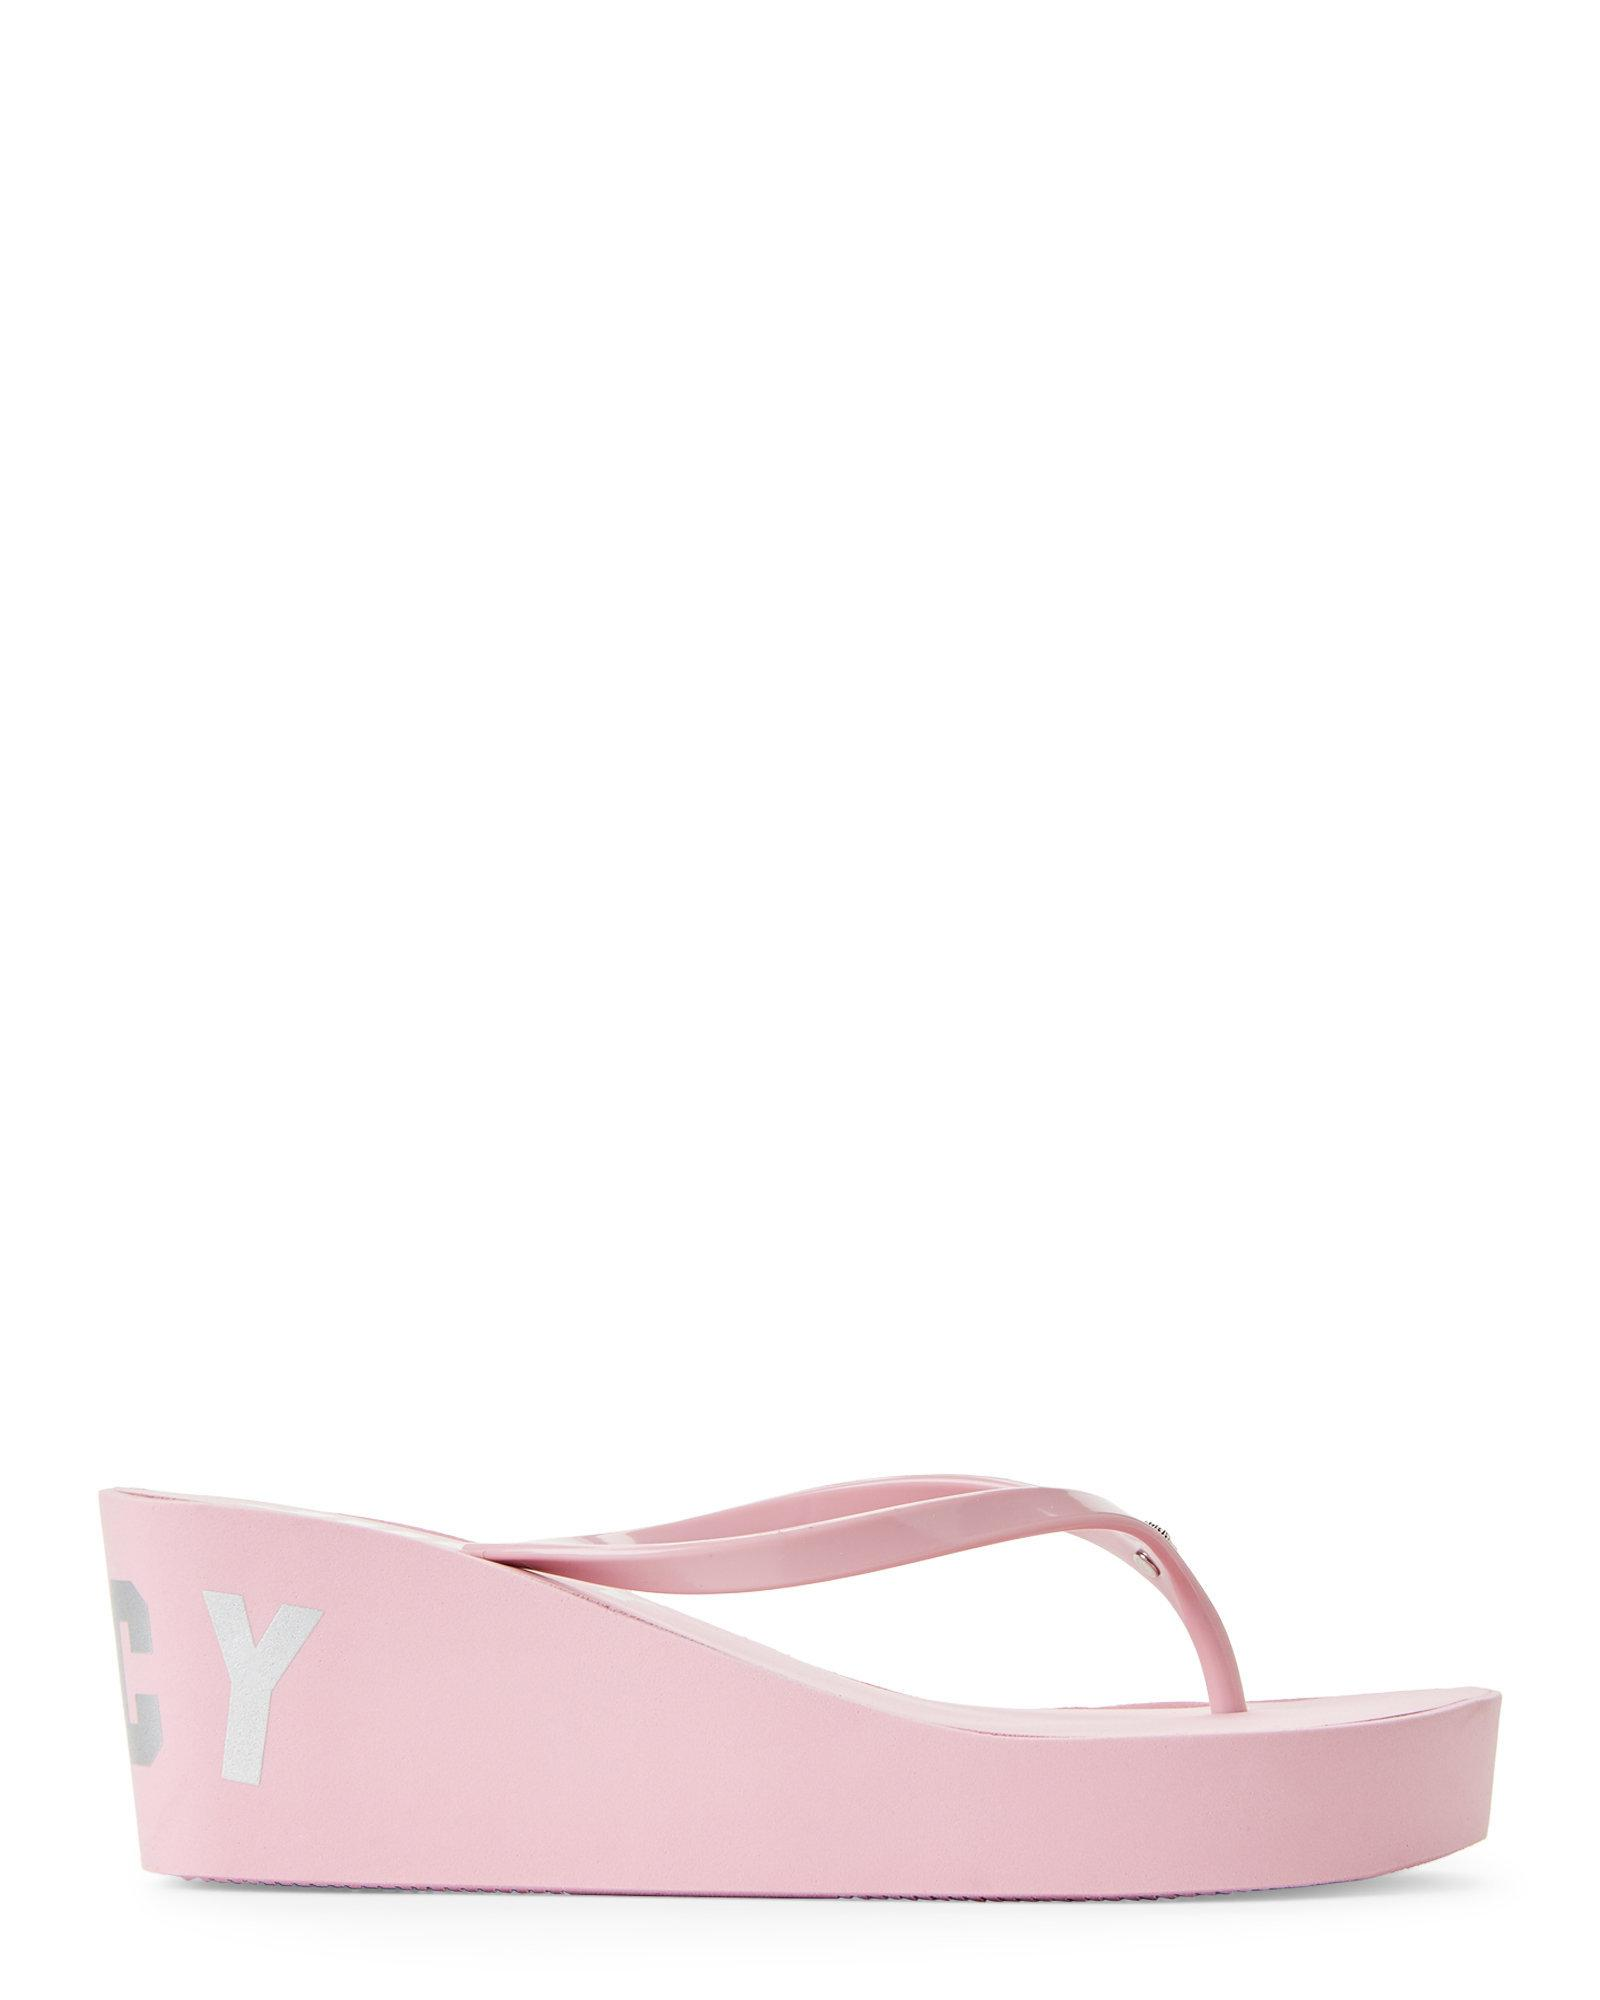 597c85a8f61 Lyst - Juicy Couture Dusty Pink Naomi Wedge Flip Flops in Pink